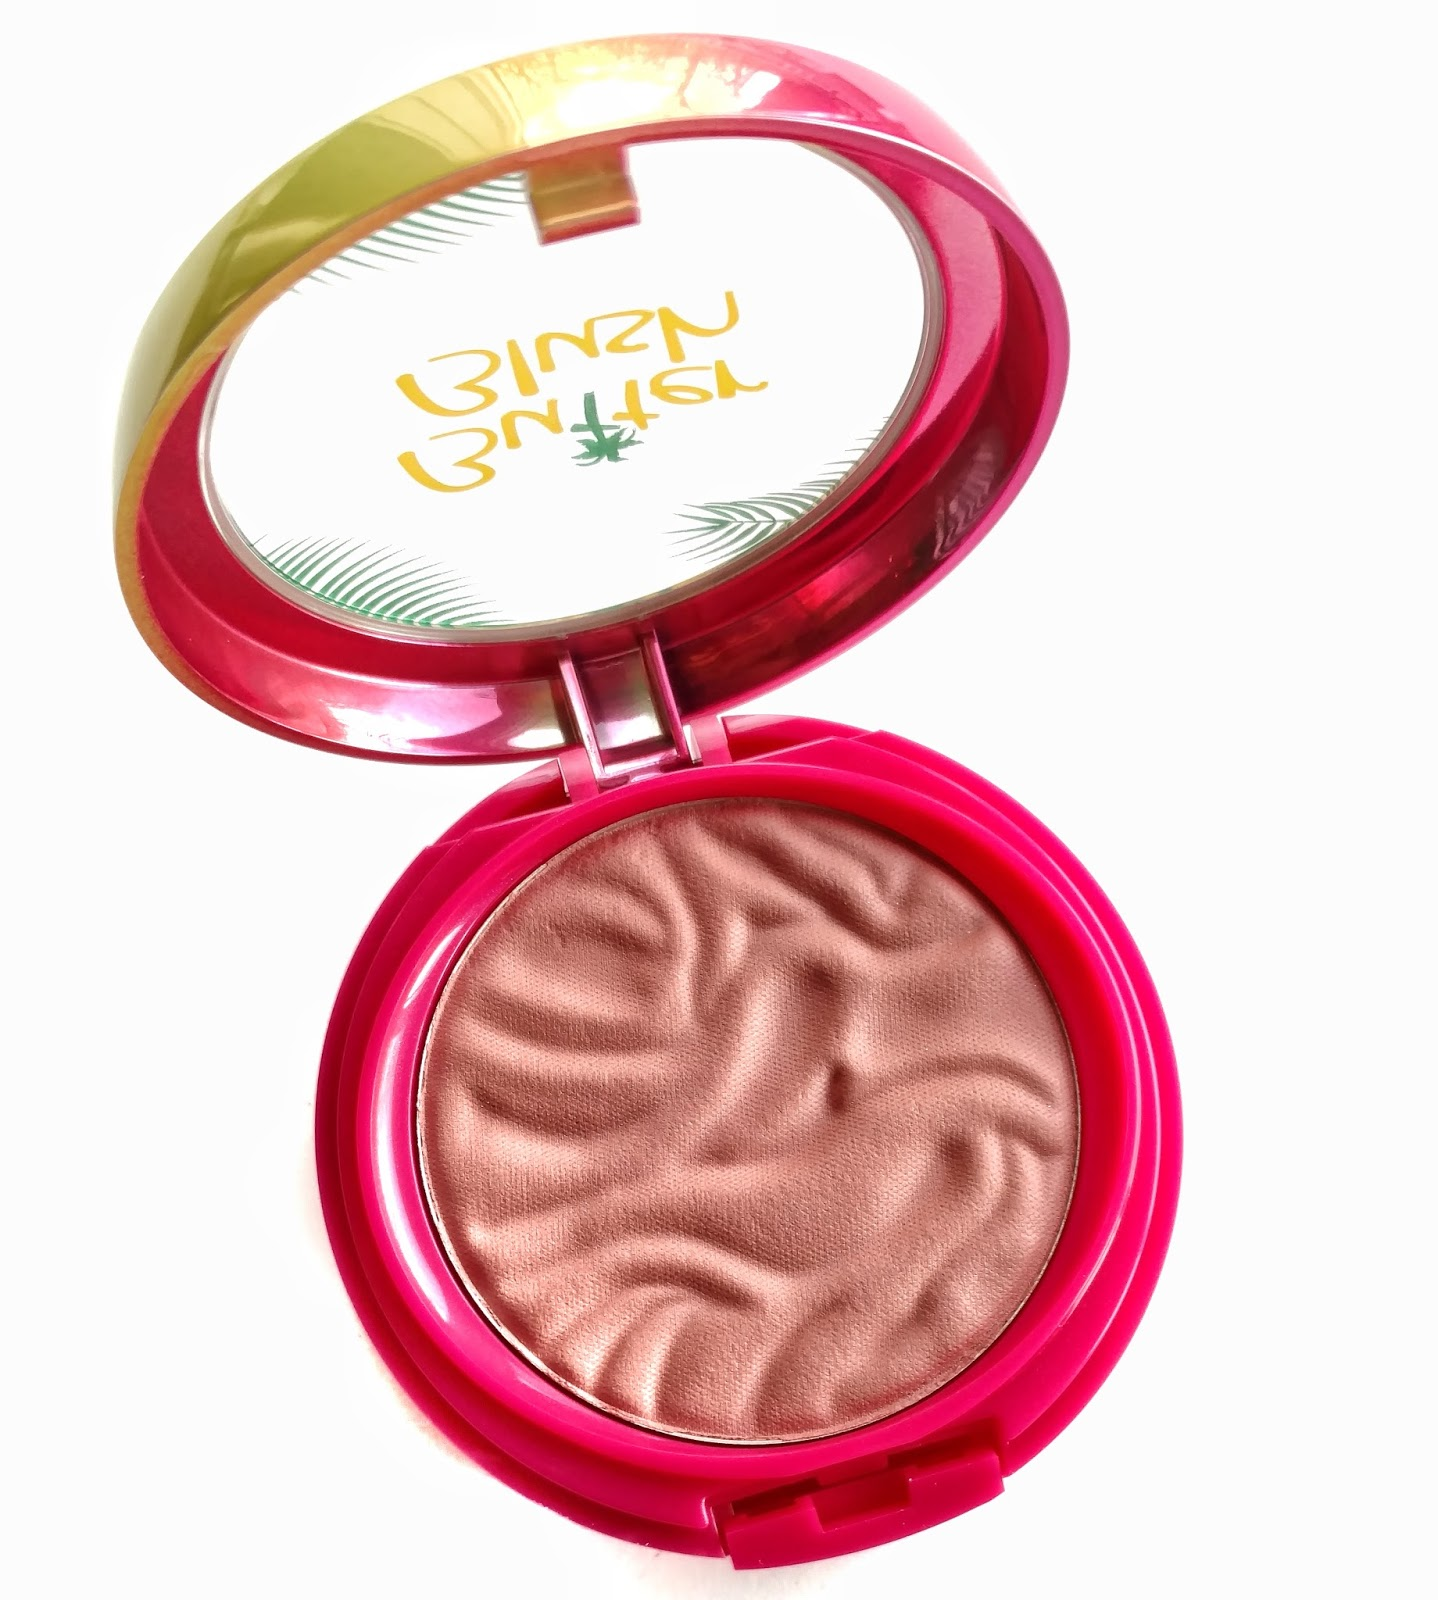 Physicians Formula Butter Blush Vintage Rouge